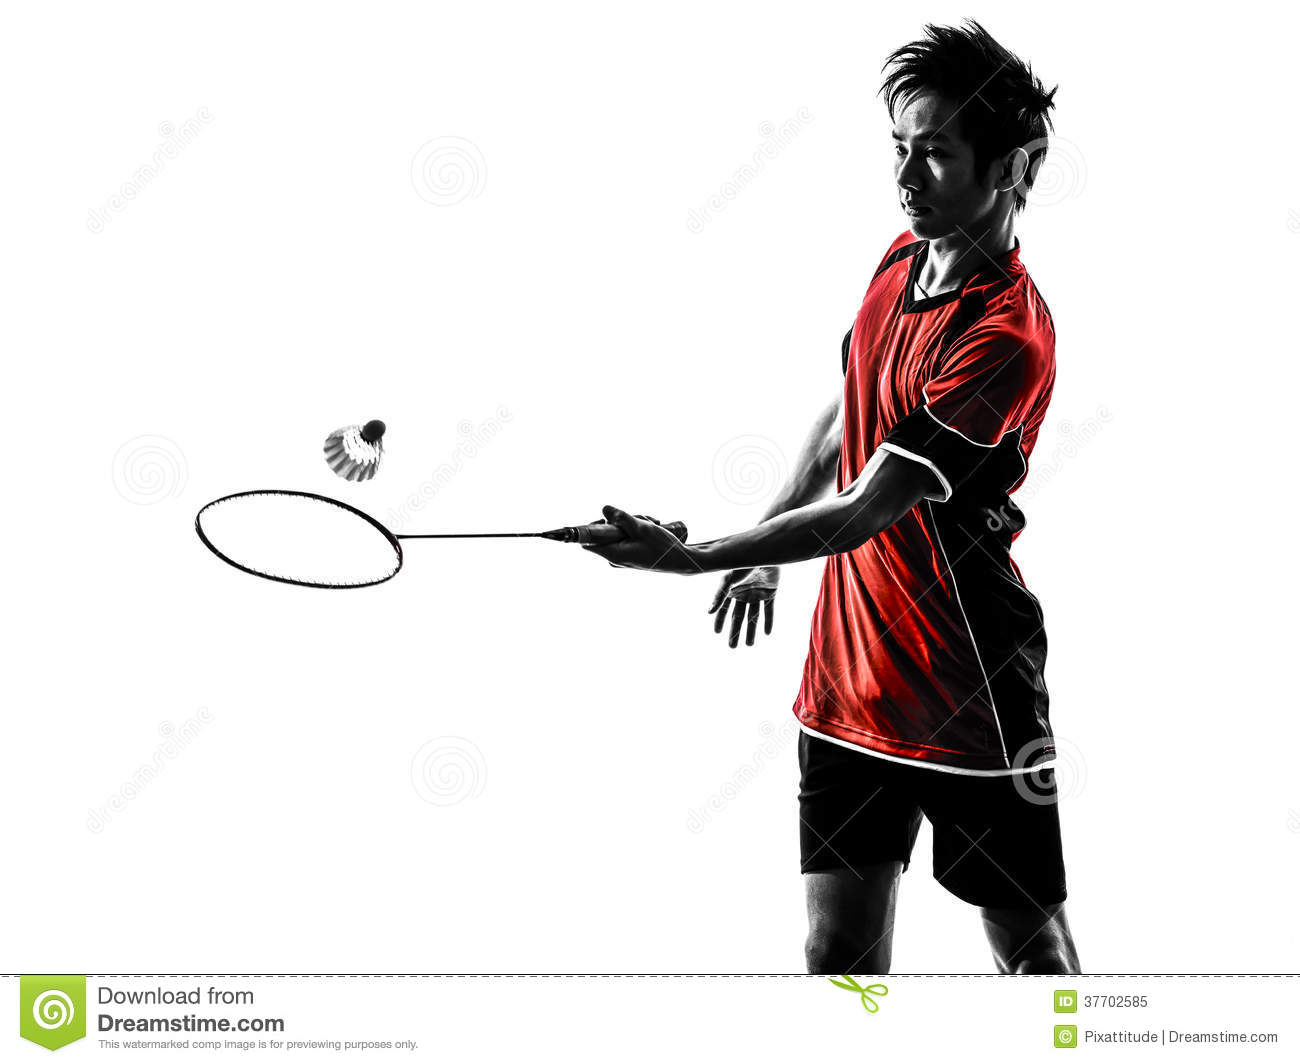 badminton player young man silhouette royalty free stock free firework clipart with no background free fireworks clipart images